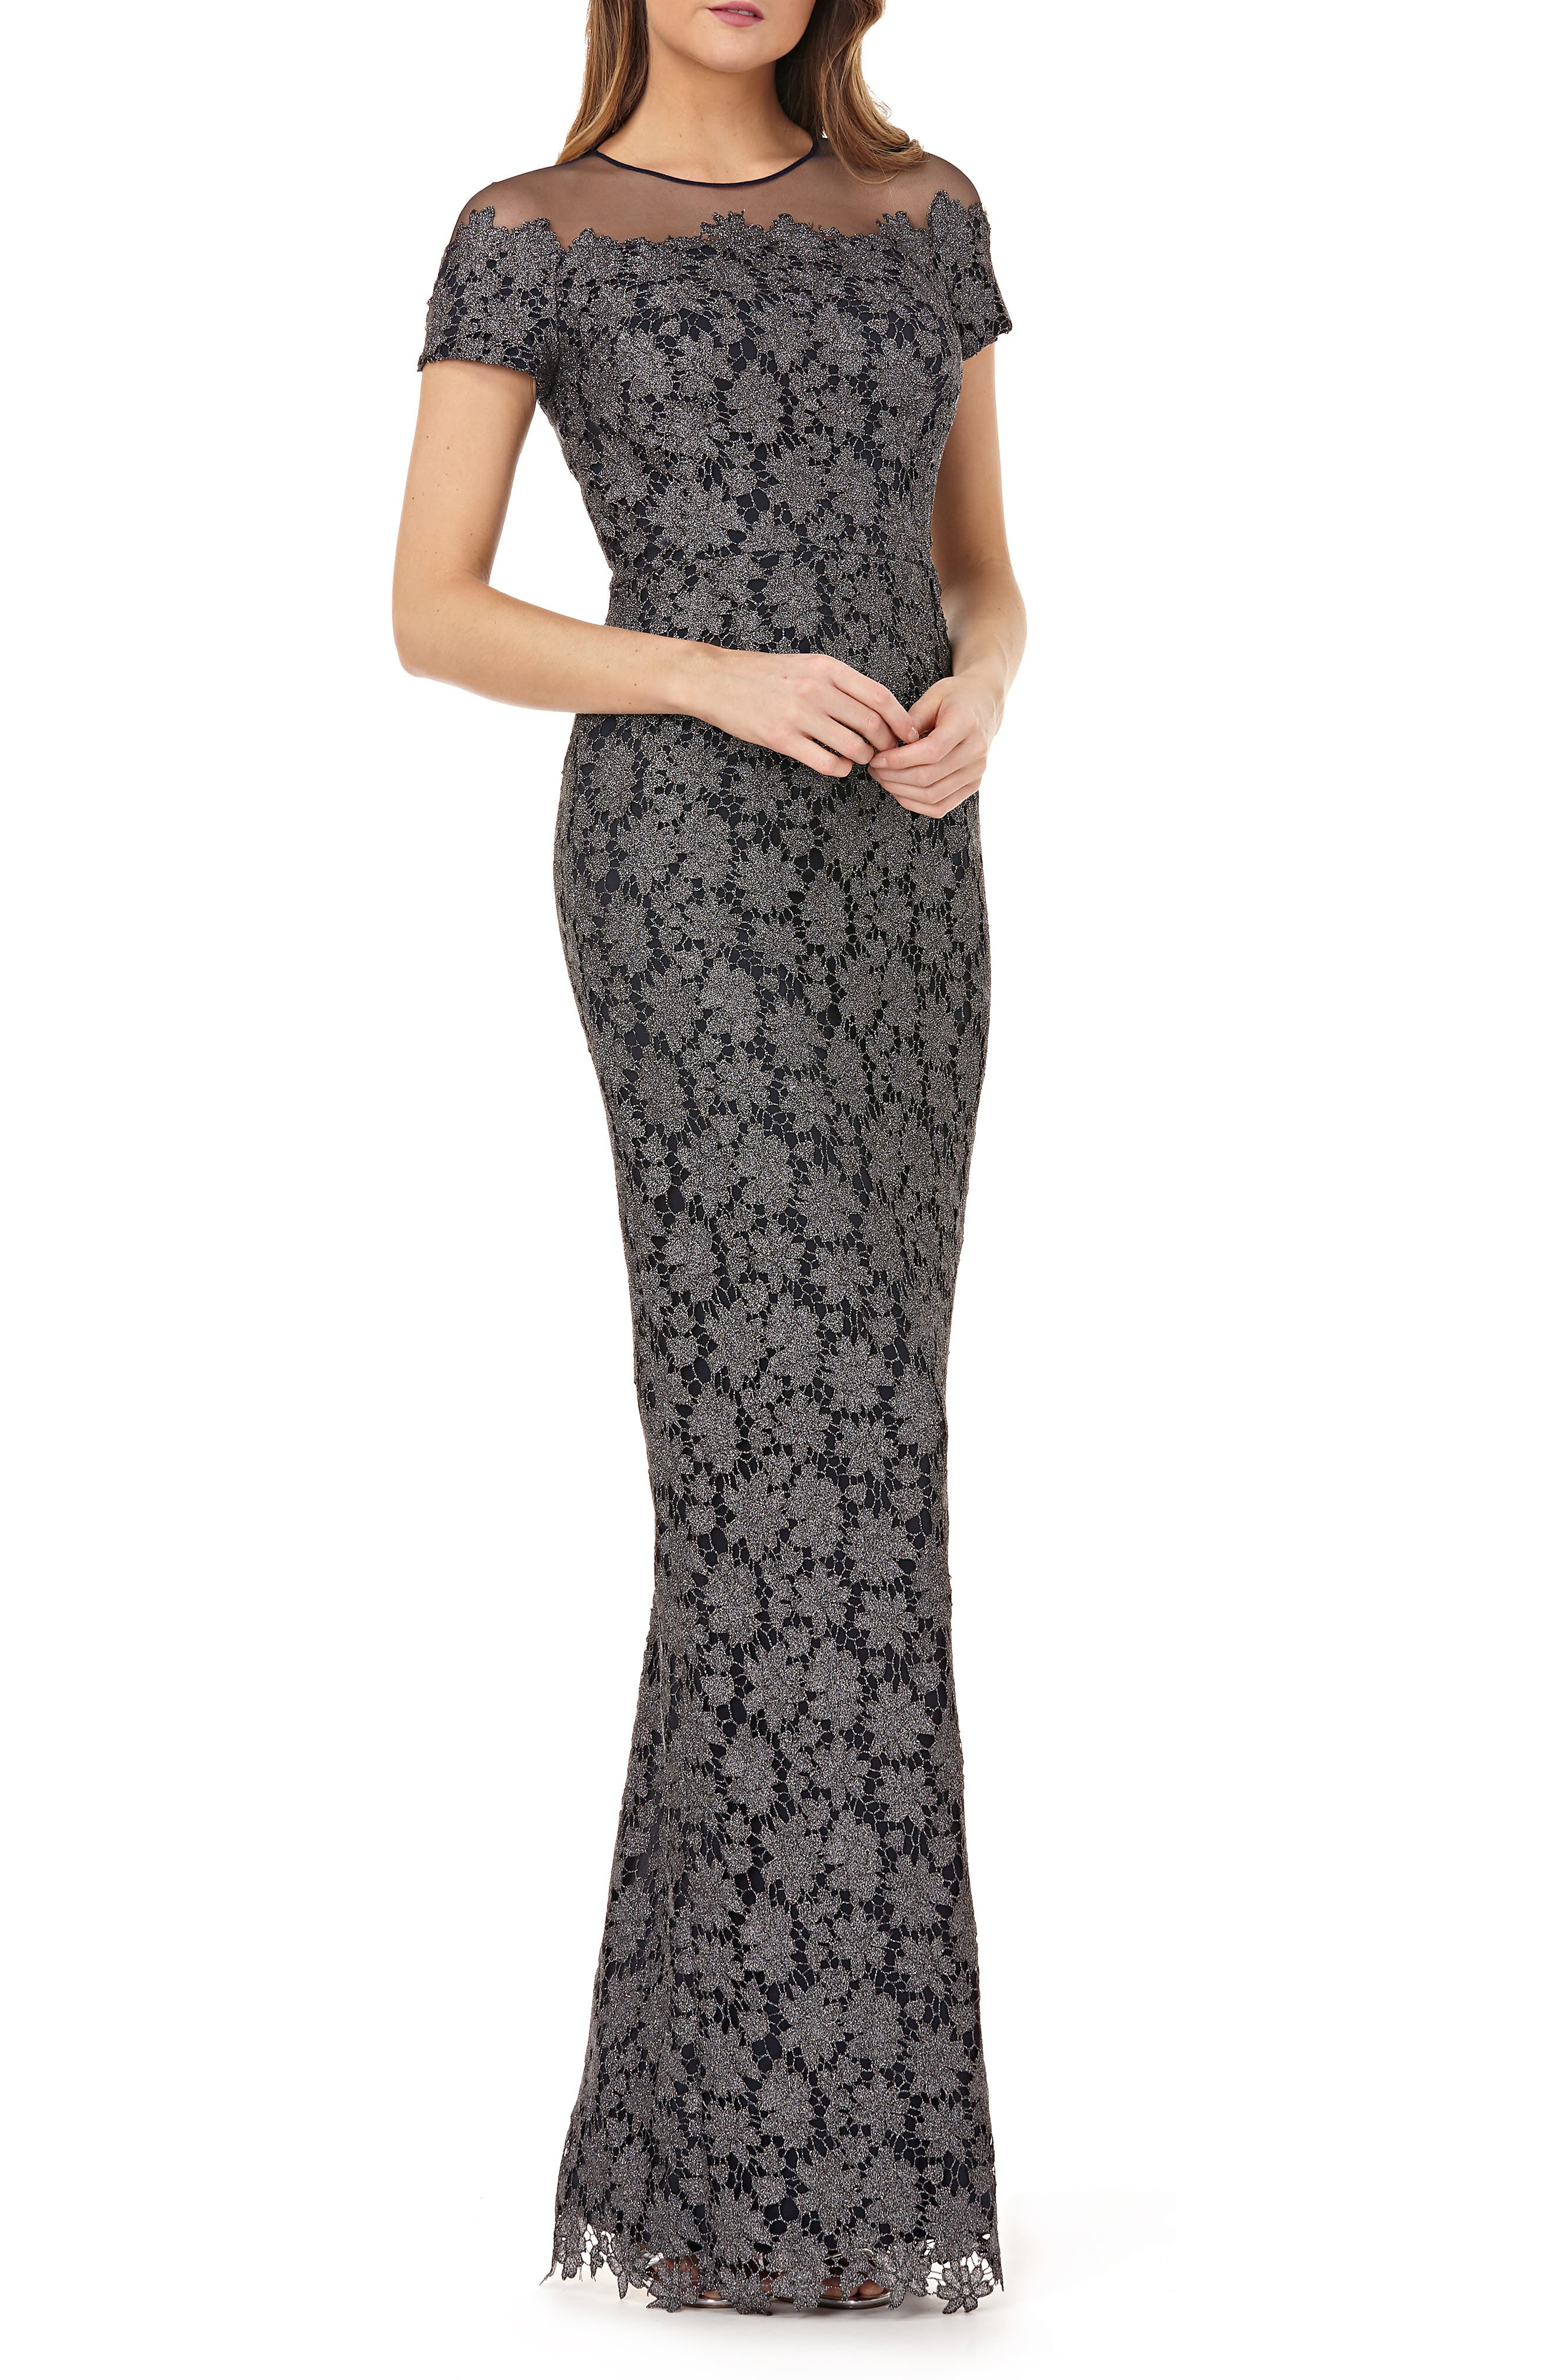 Js Collections Illusion Metallic Lace Gown